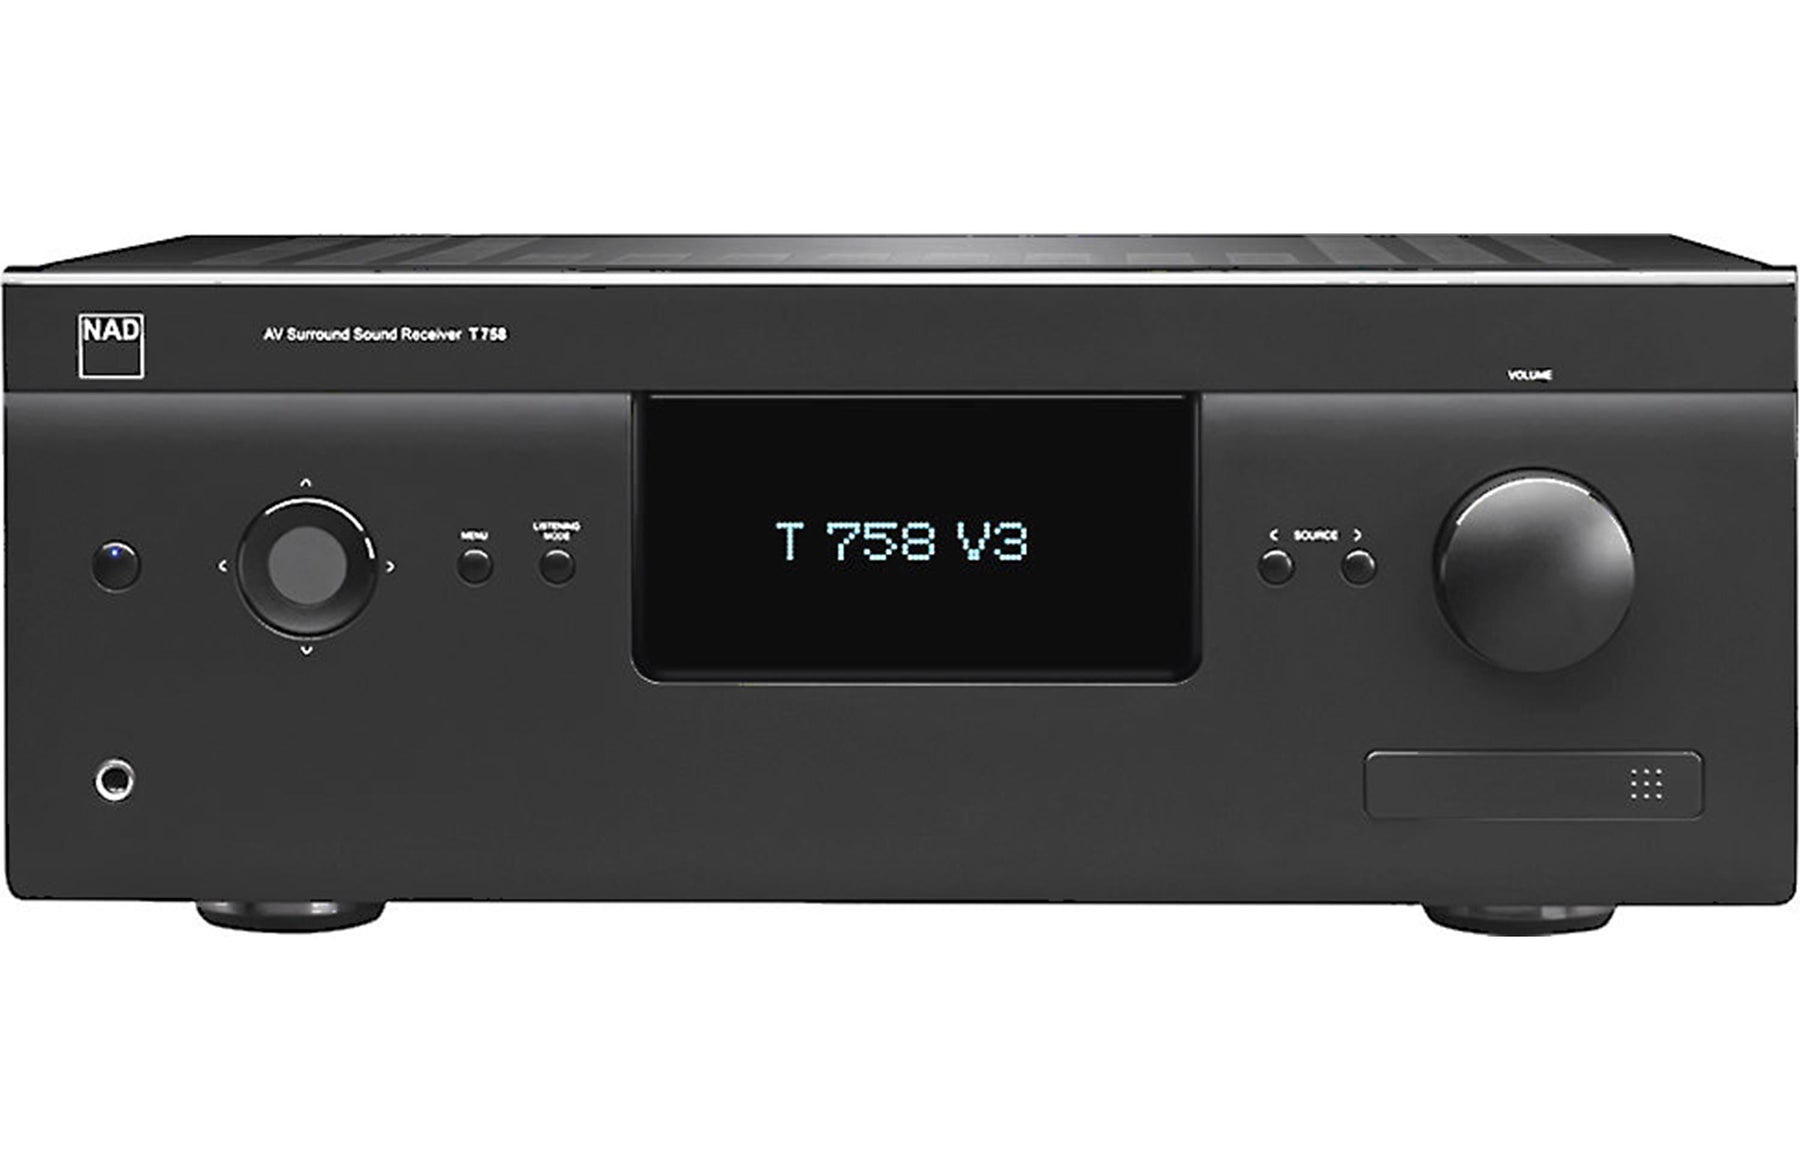 NAD Electronics T 758 V3 7.2 Channel A/V Surround Sound Receiver Factory Refurbished - Safe and Sound HQ